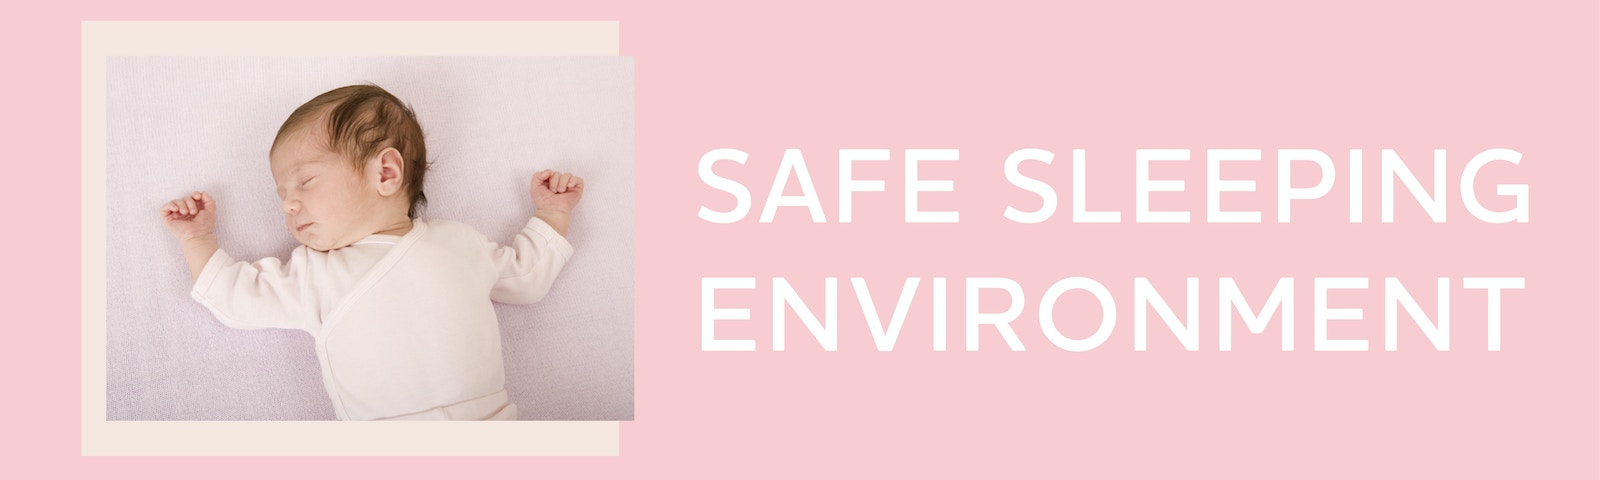 Image of a sleeping baby with text that reads Safe Sleeping Environment